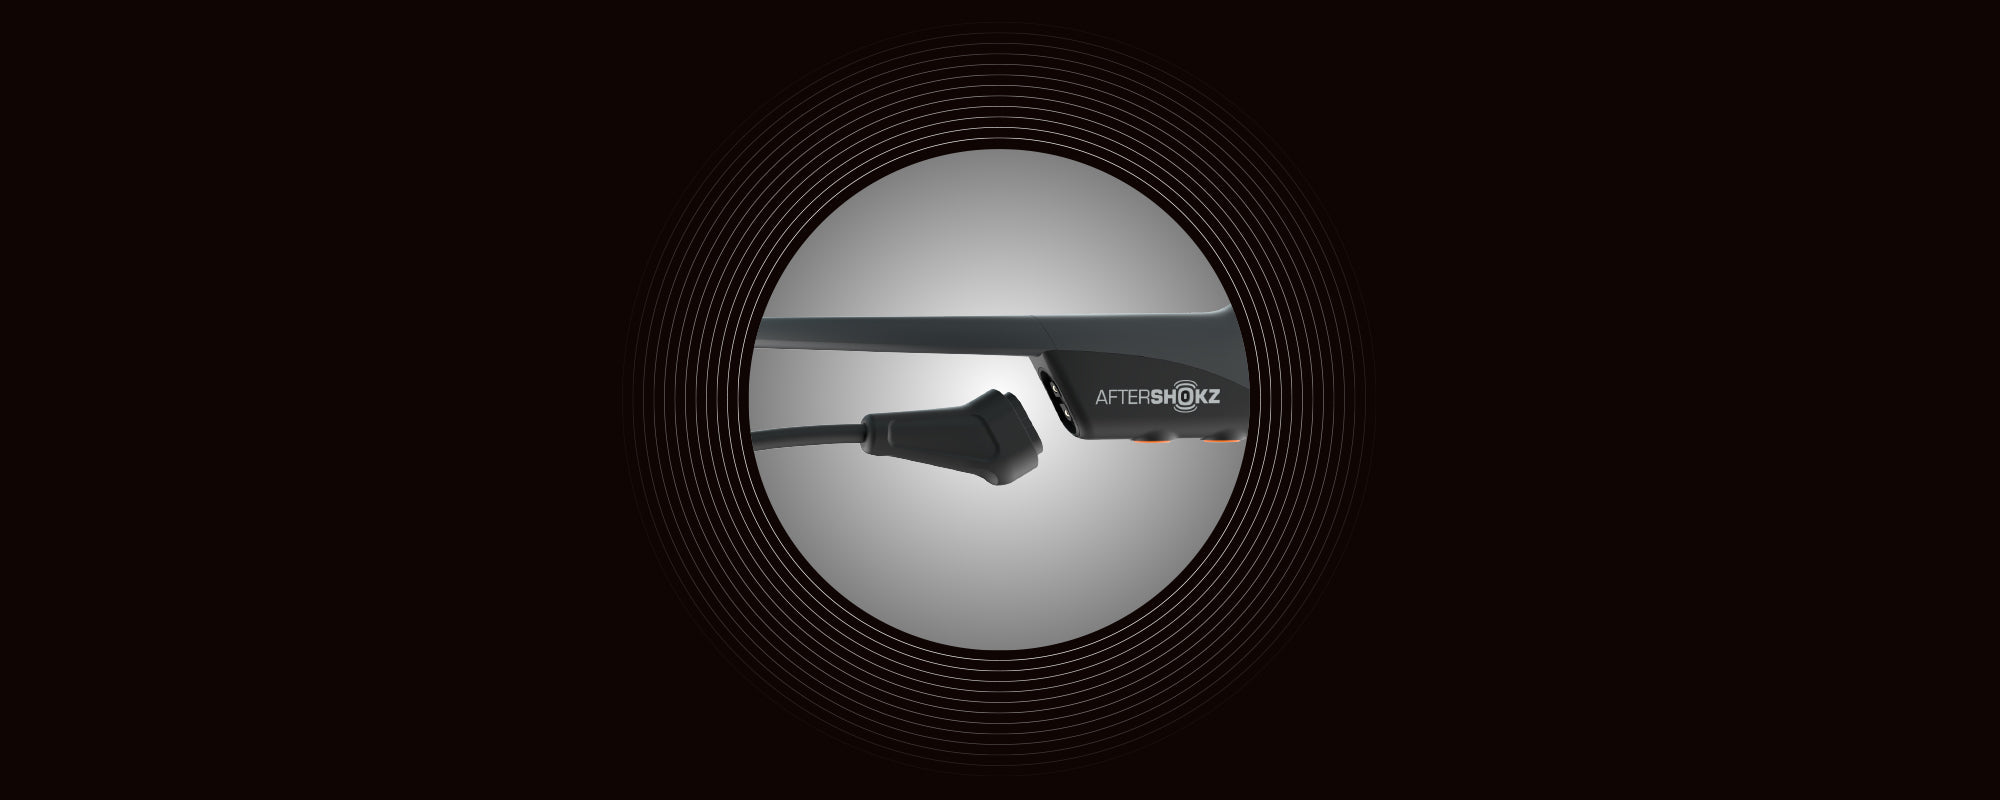 Image of the Magnetic Induction charging port on AfterShokz Aeropex headphones